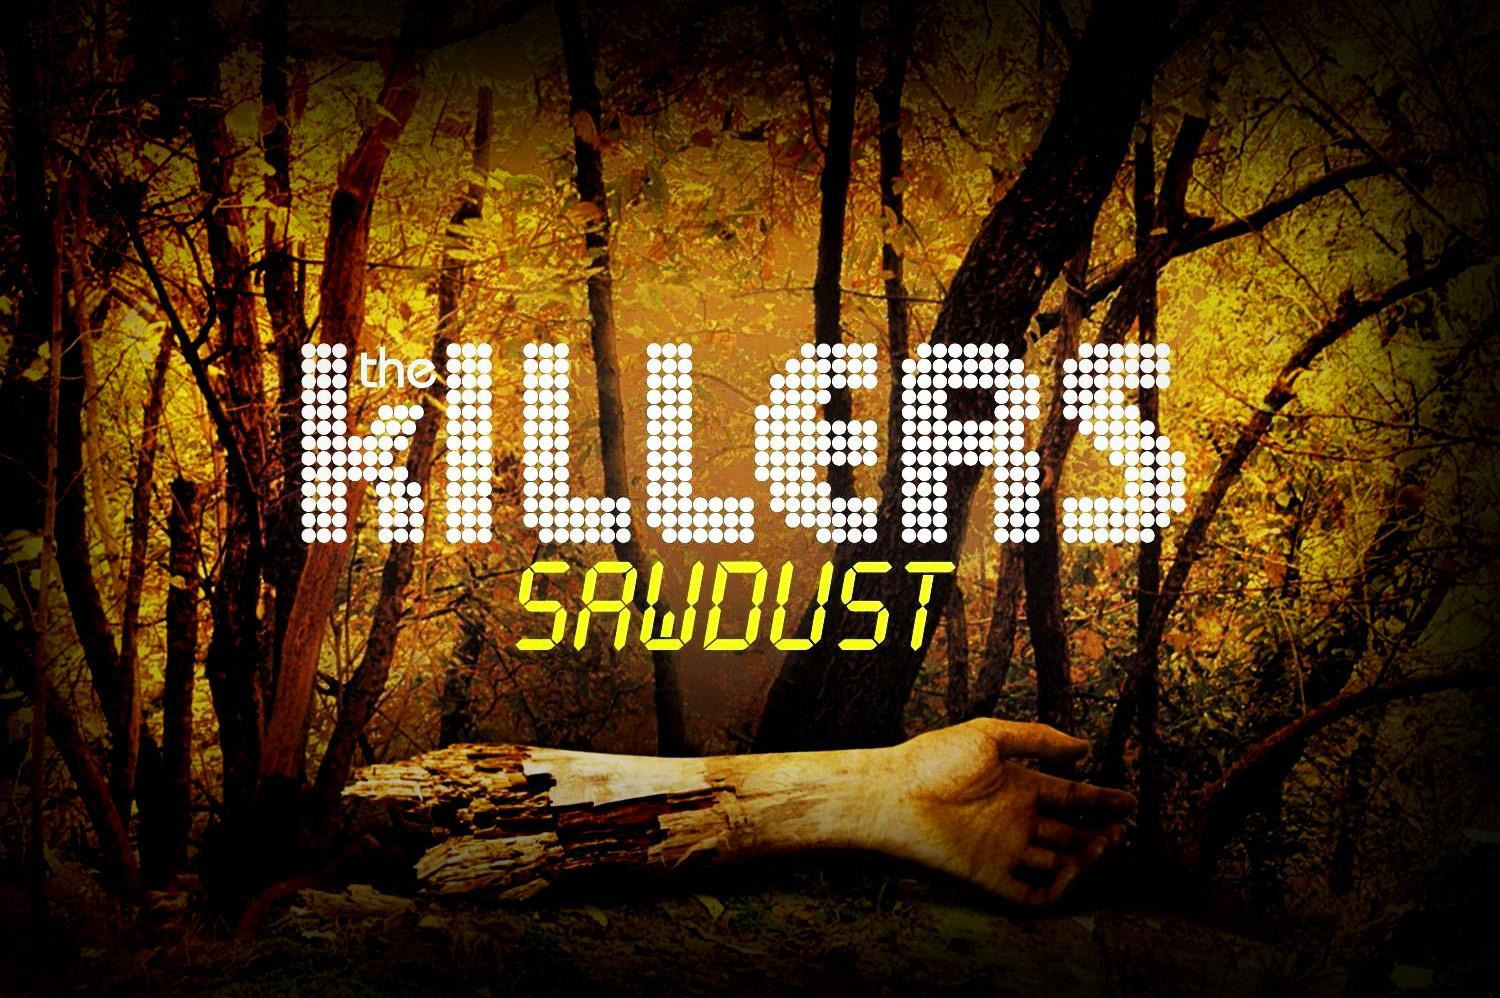 sawdust Album band killers HD Wallpaper